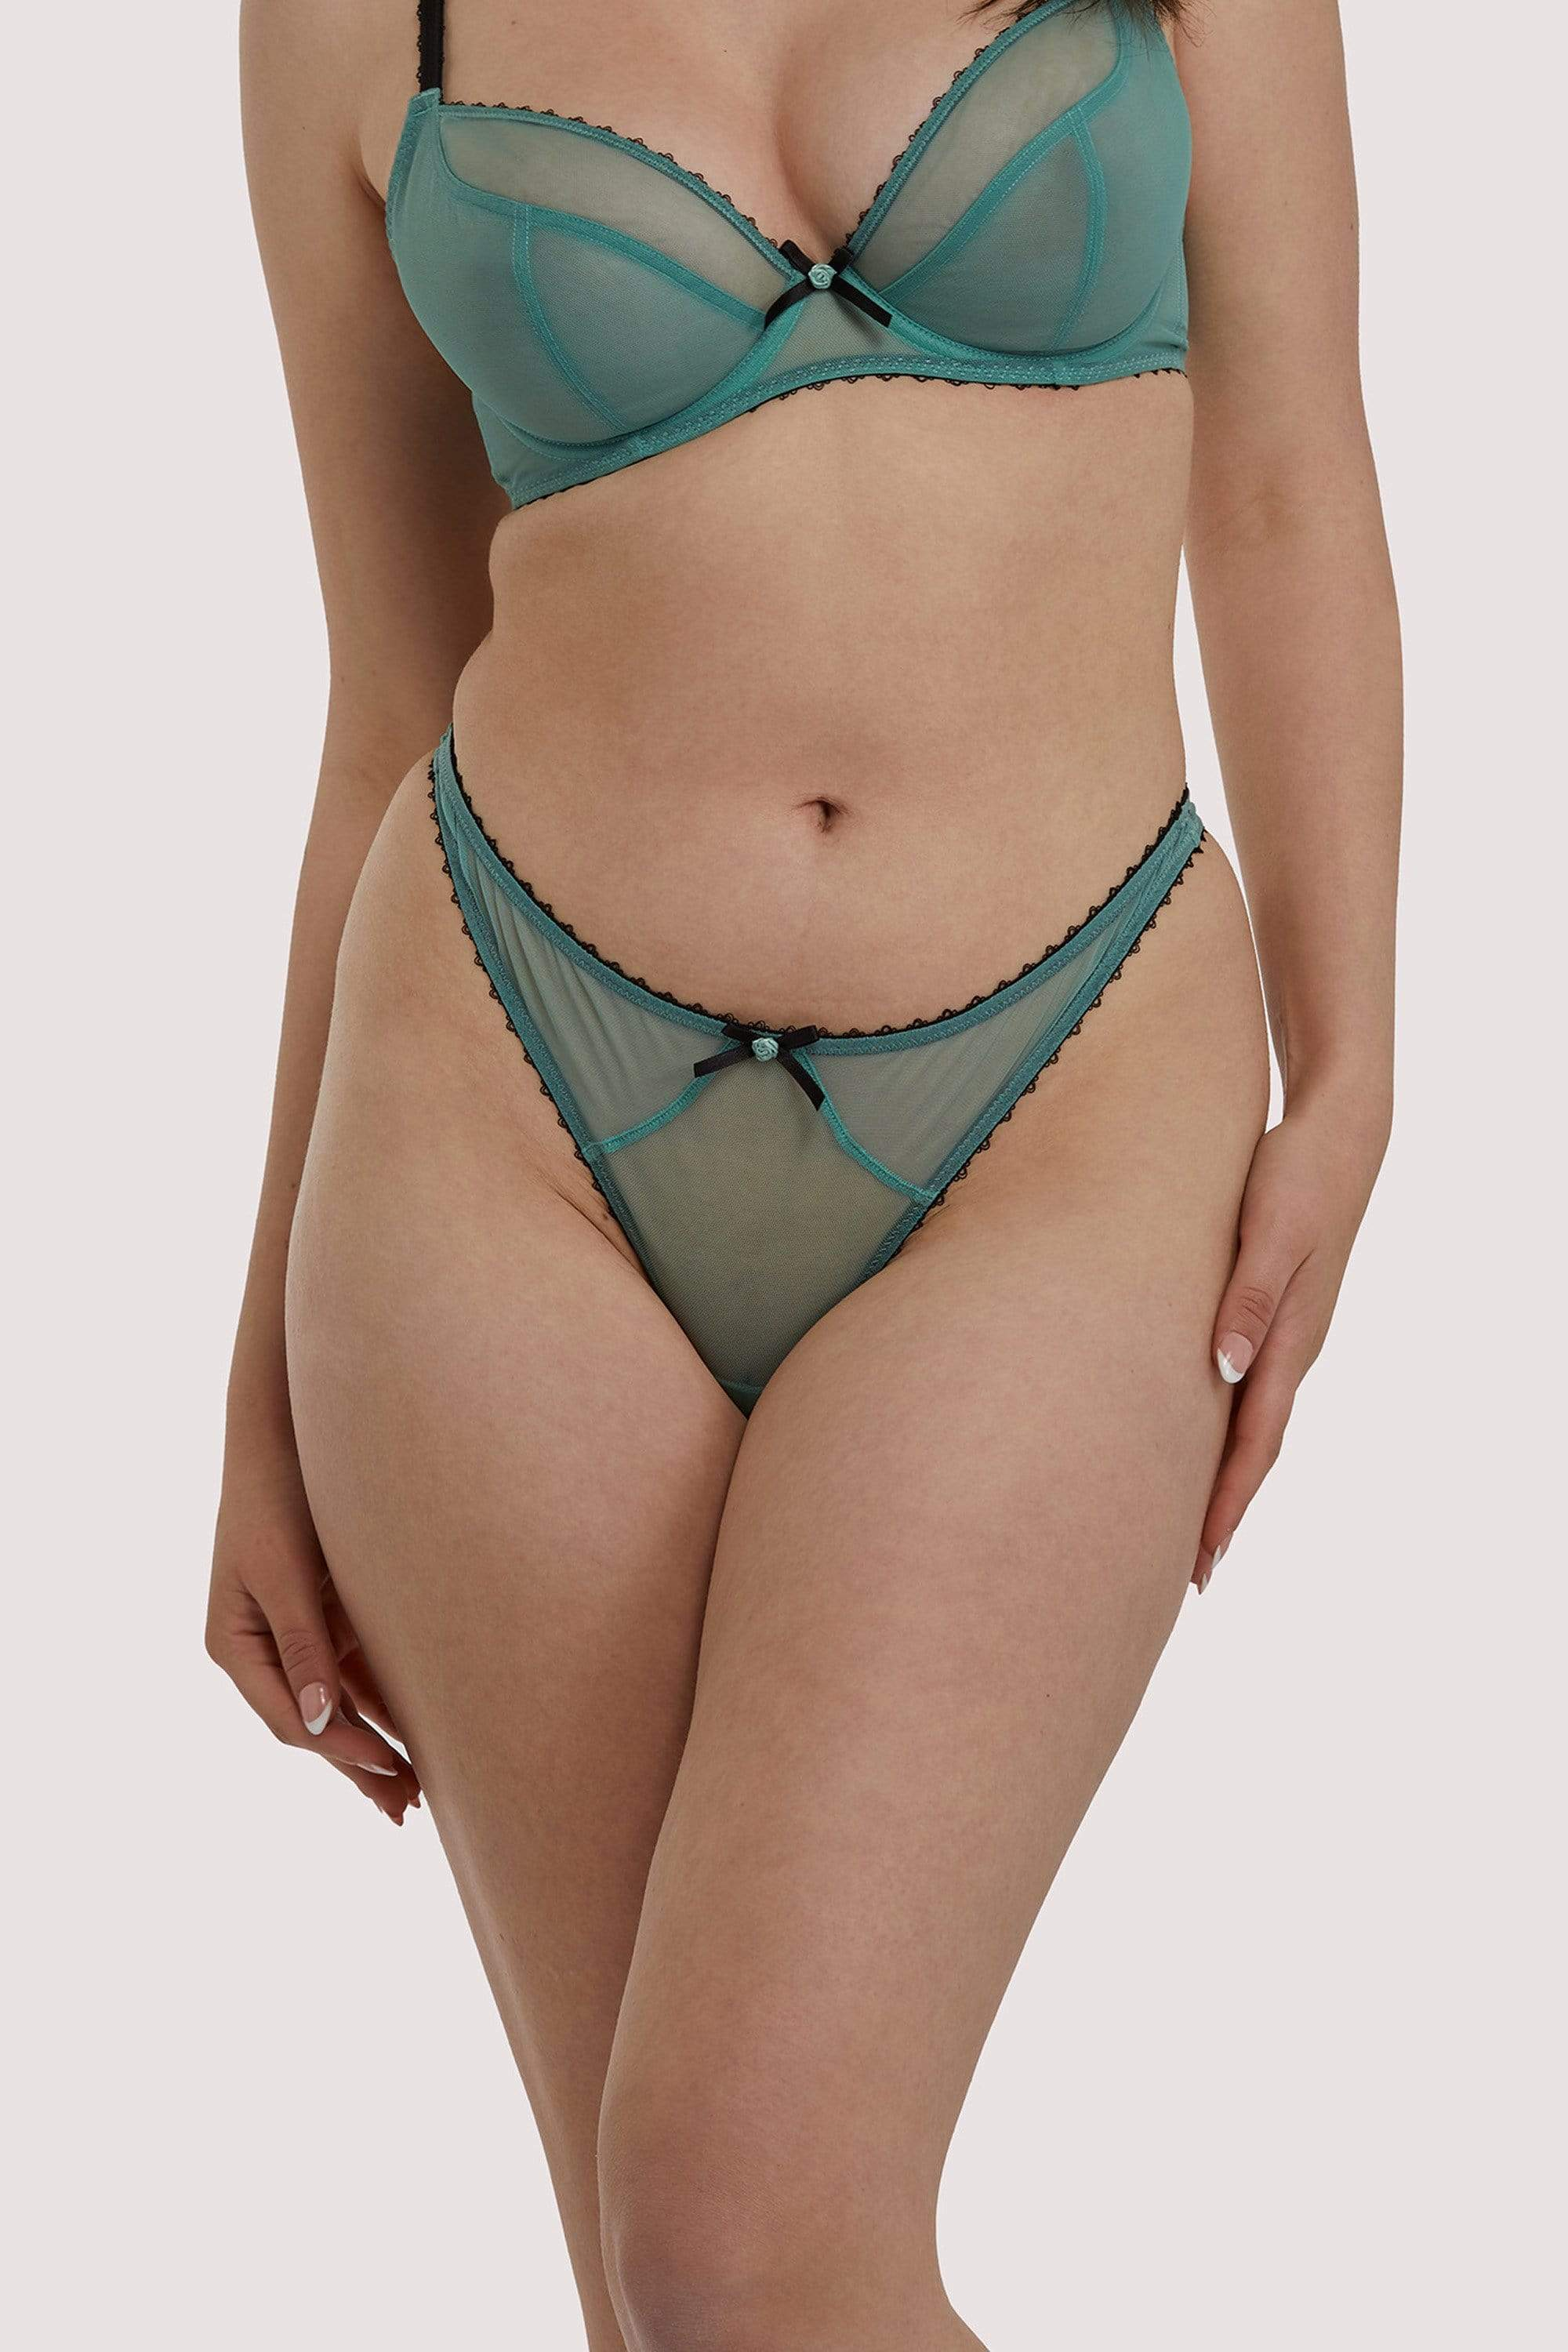 Deja Day Grace Green Moss and Black Thong UK 10 / US 6